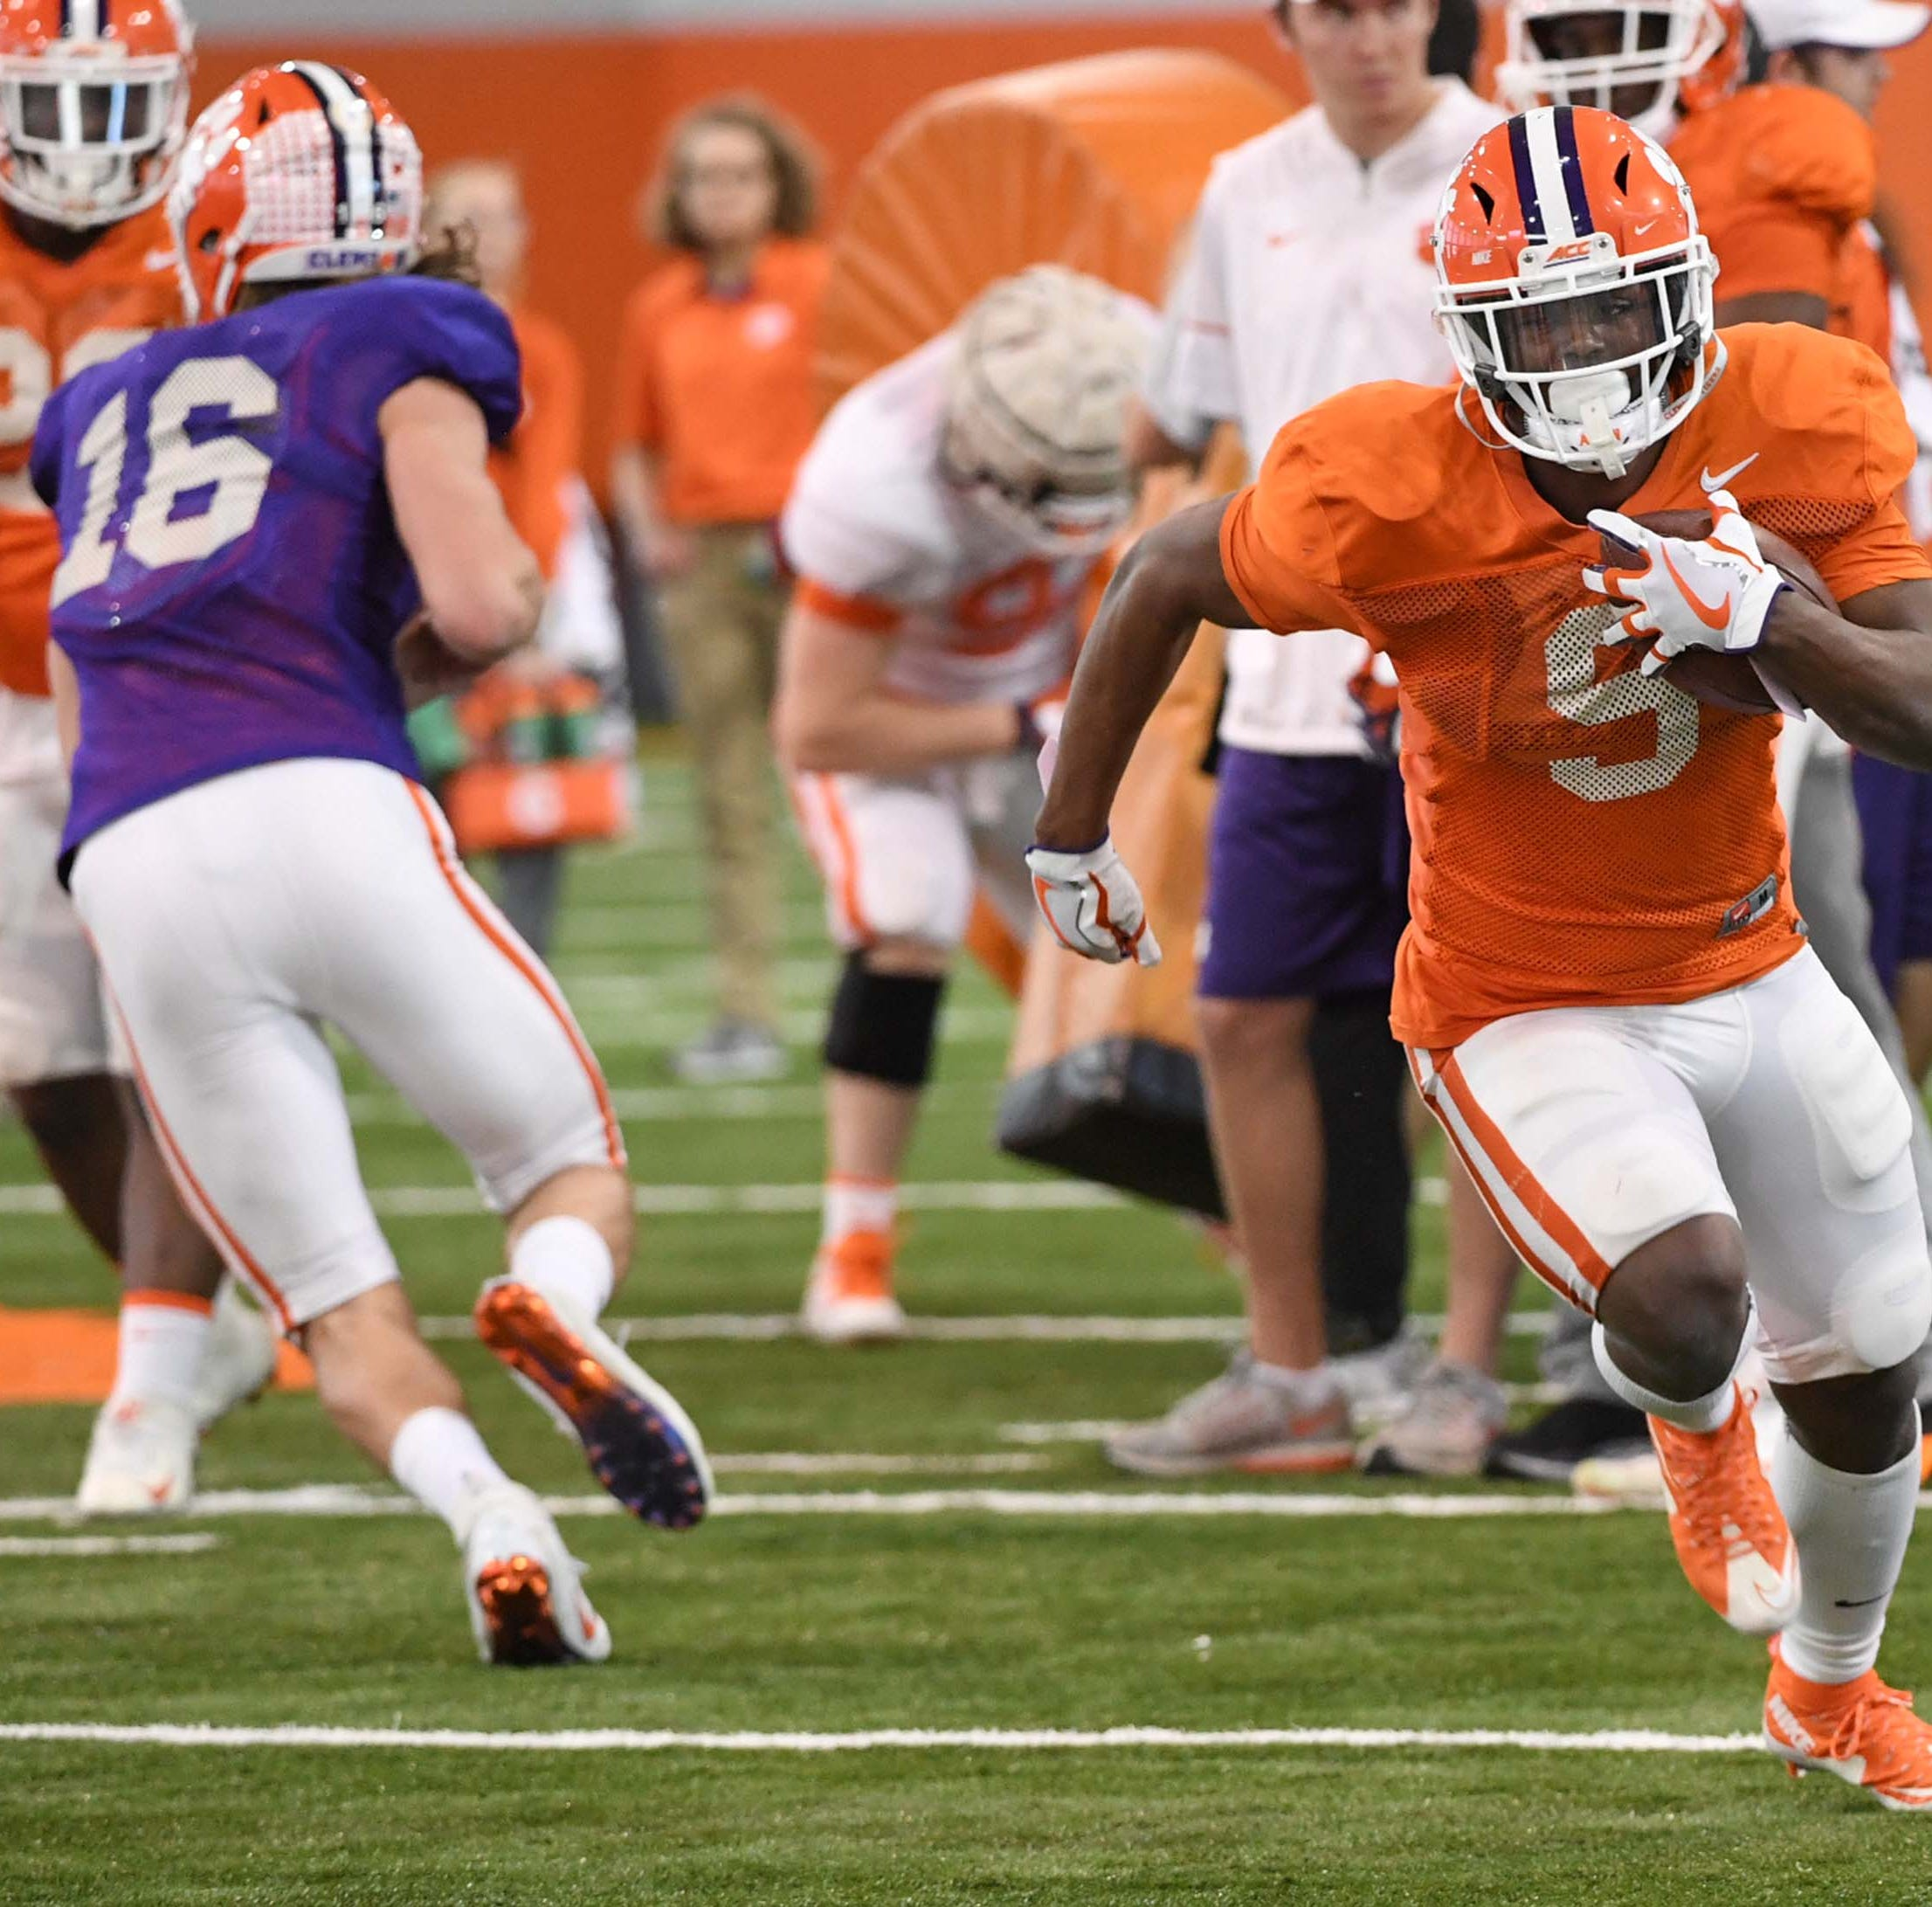 Home cookin': Clemson running back Travis Etienne beefs up over spring break